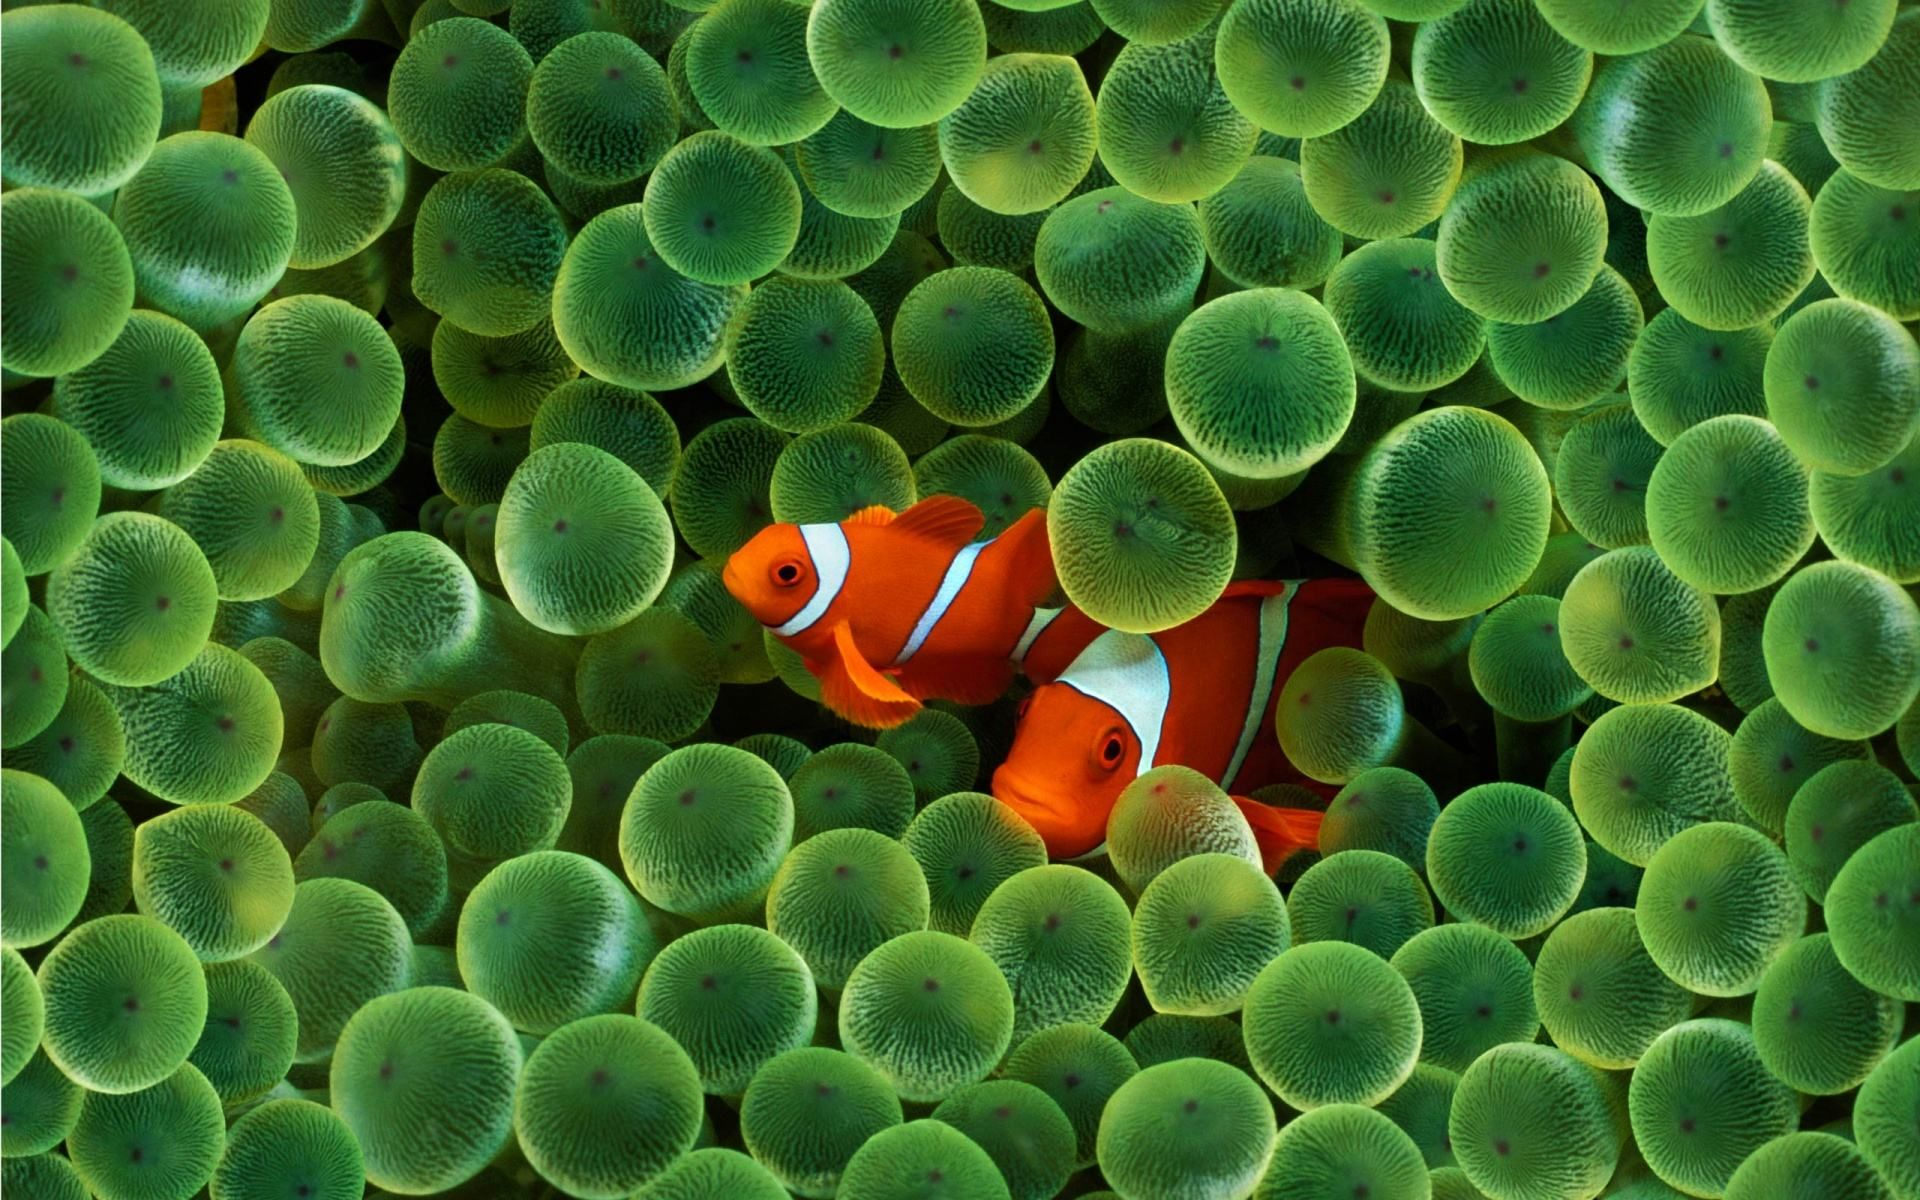 moving fish backgrounds free no downloads | download free wallpapers